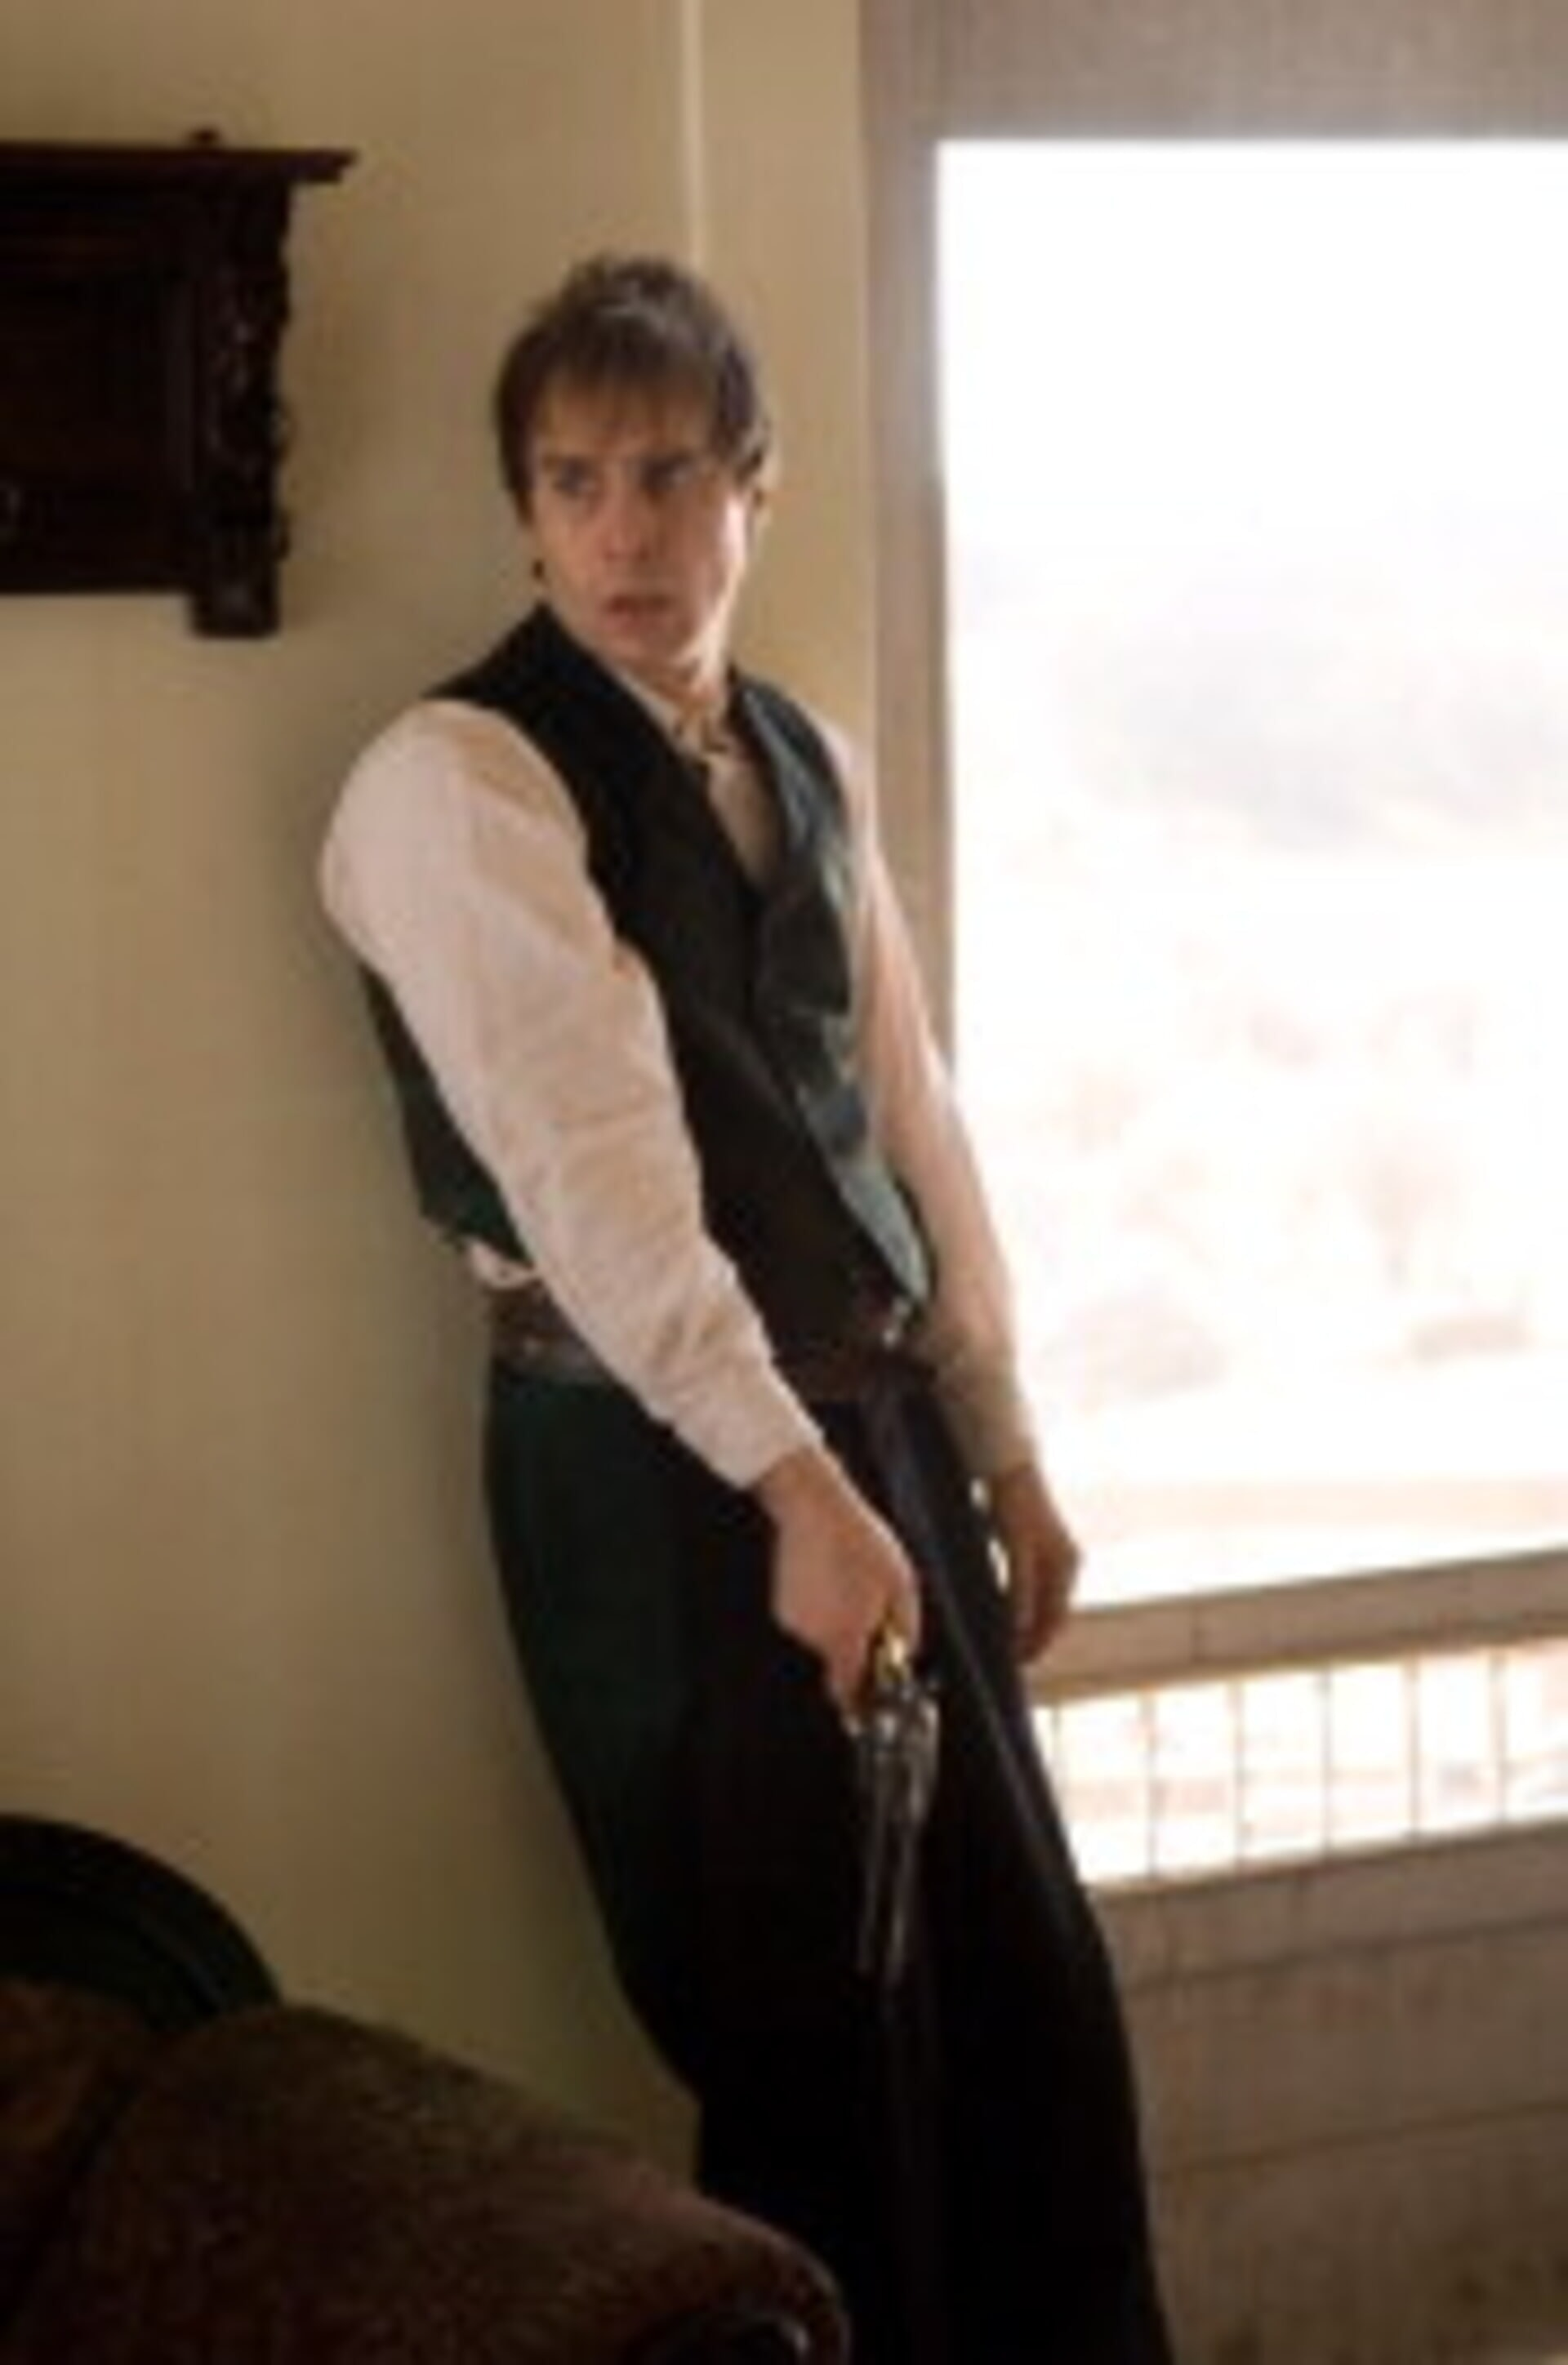 The Assassination of Jesse James by the Coward Robert Ford - Image 17